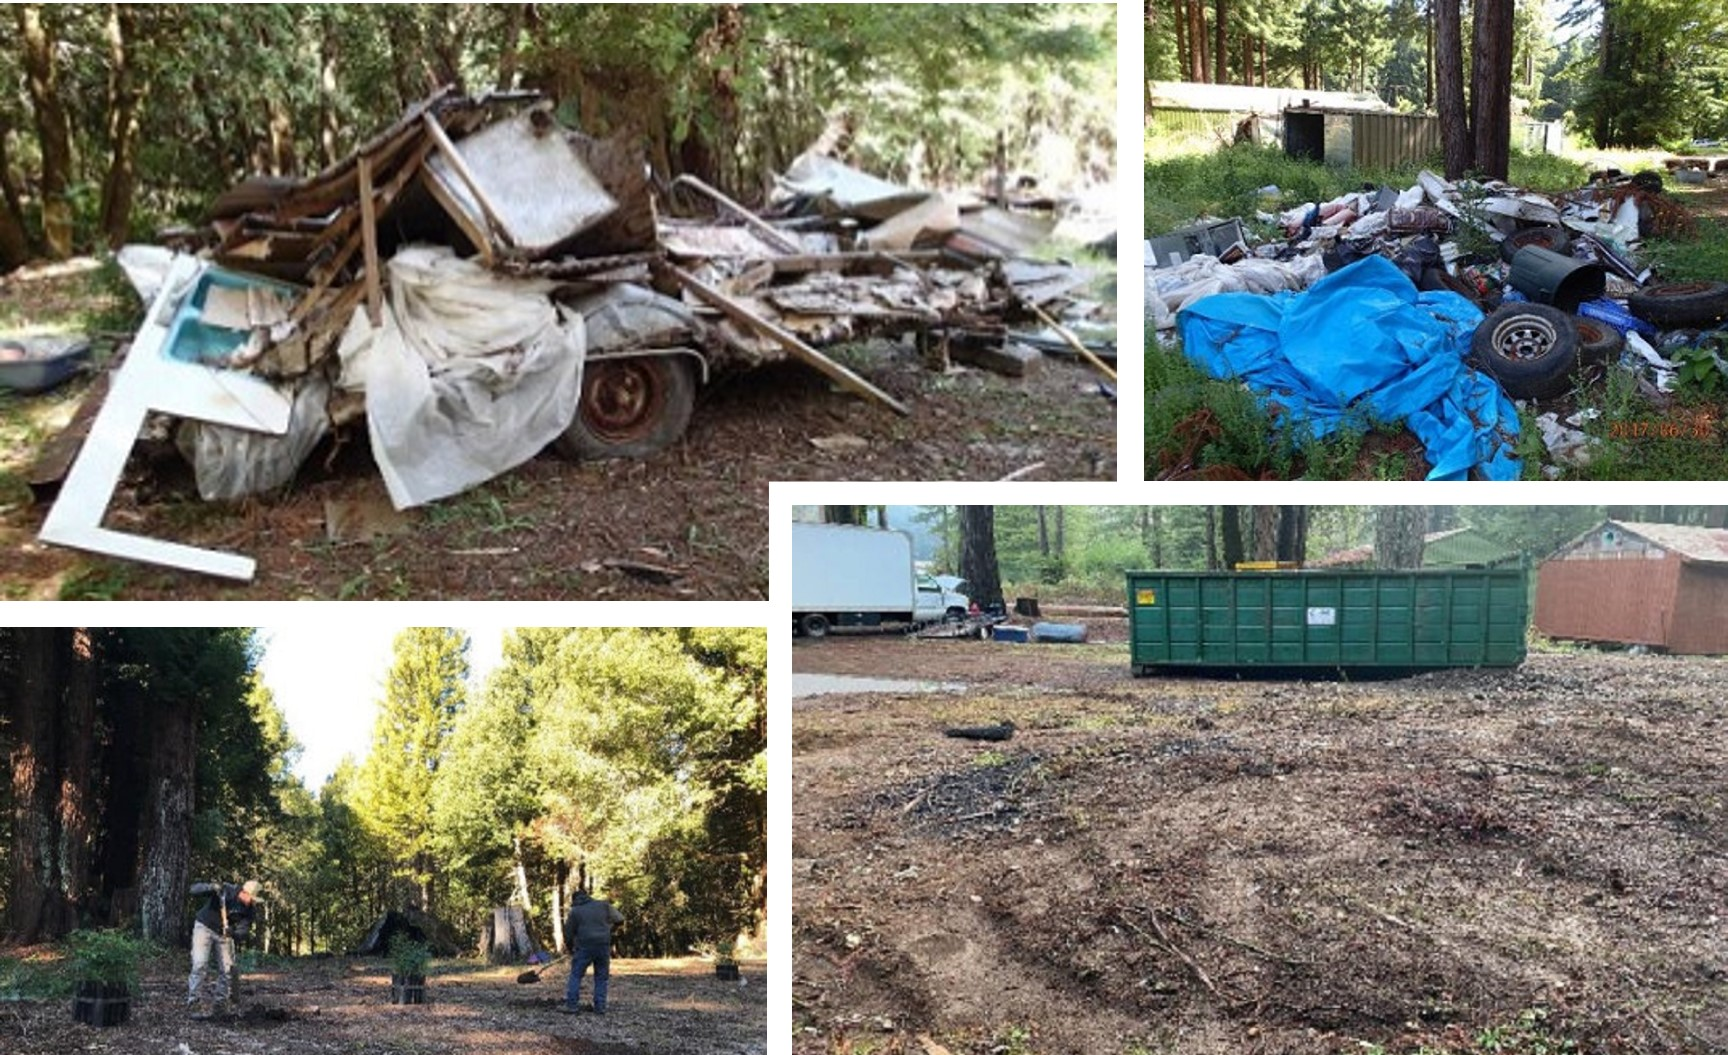 Trash piles at an illegal grow near the Mattole River (top left and right), garbage and refuse organized for disposal (bottom right), and replanting efforts of 160 Sequoia sempervirens (bottom left)